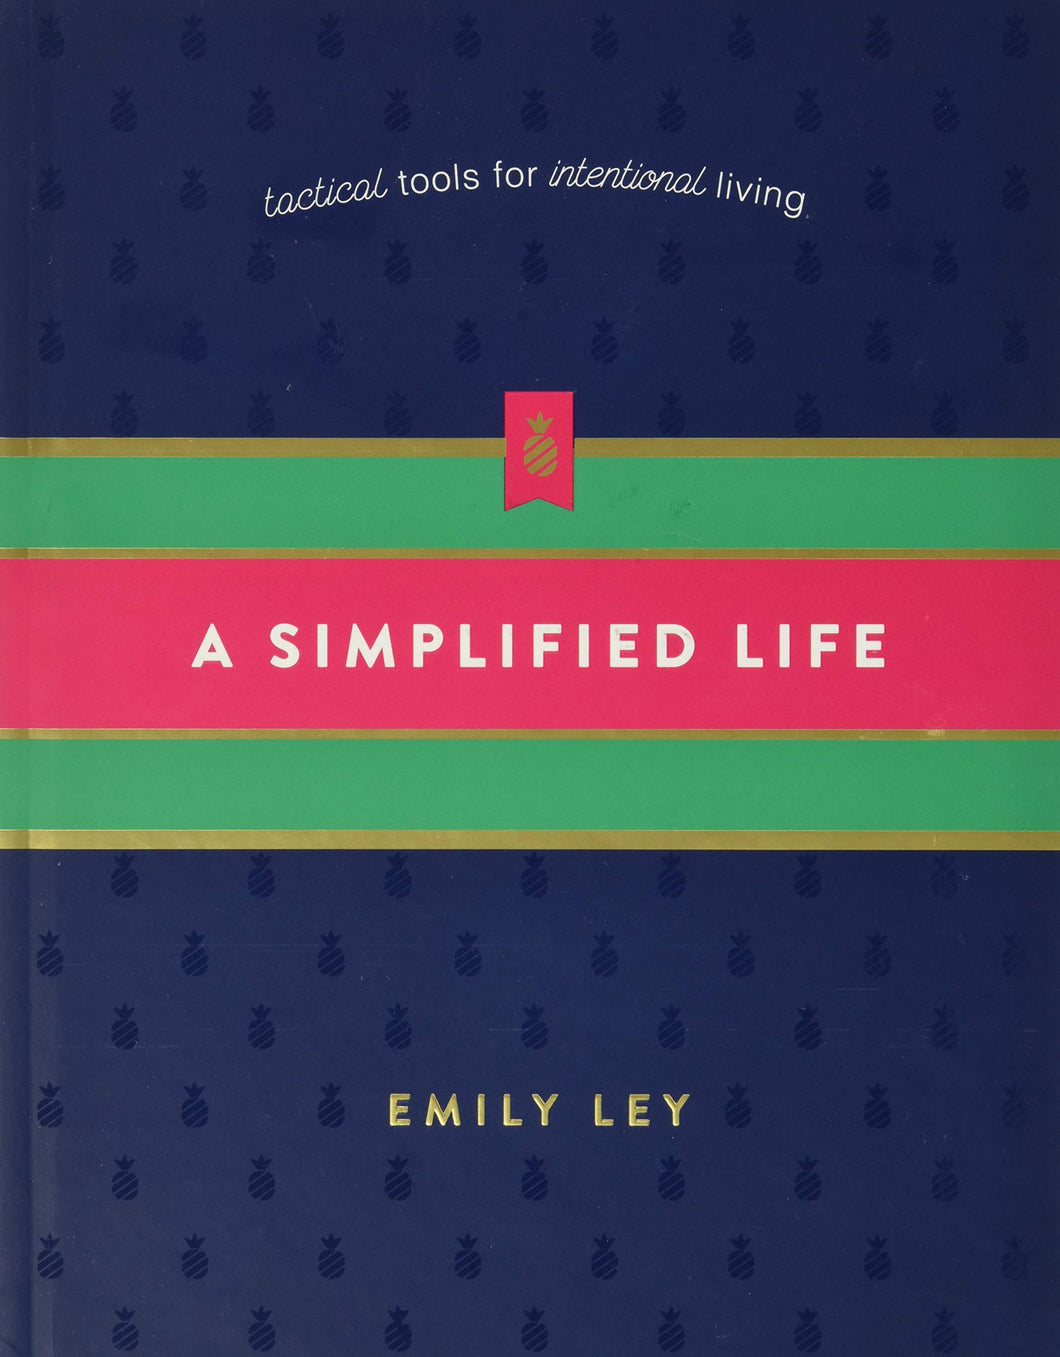 A Simplified Life: Tactical Tools for Intentional Living (Emily Ley)